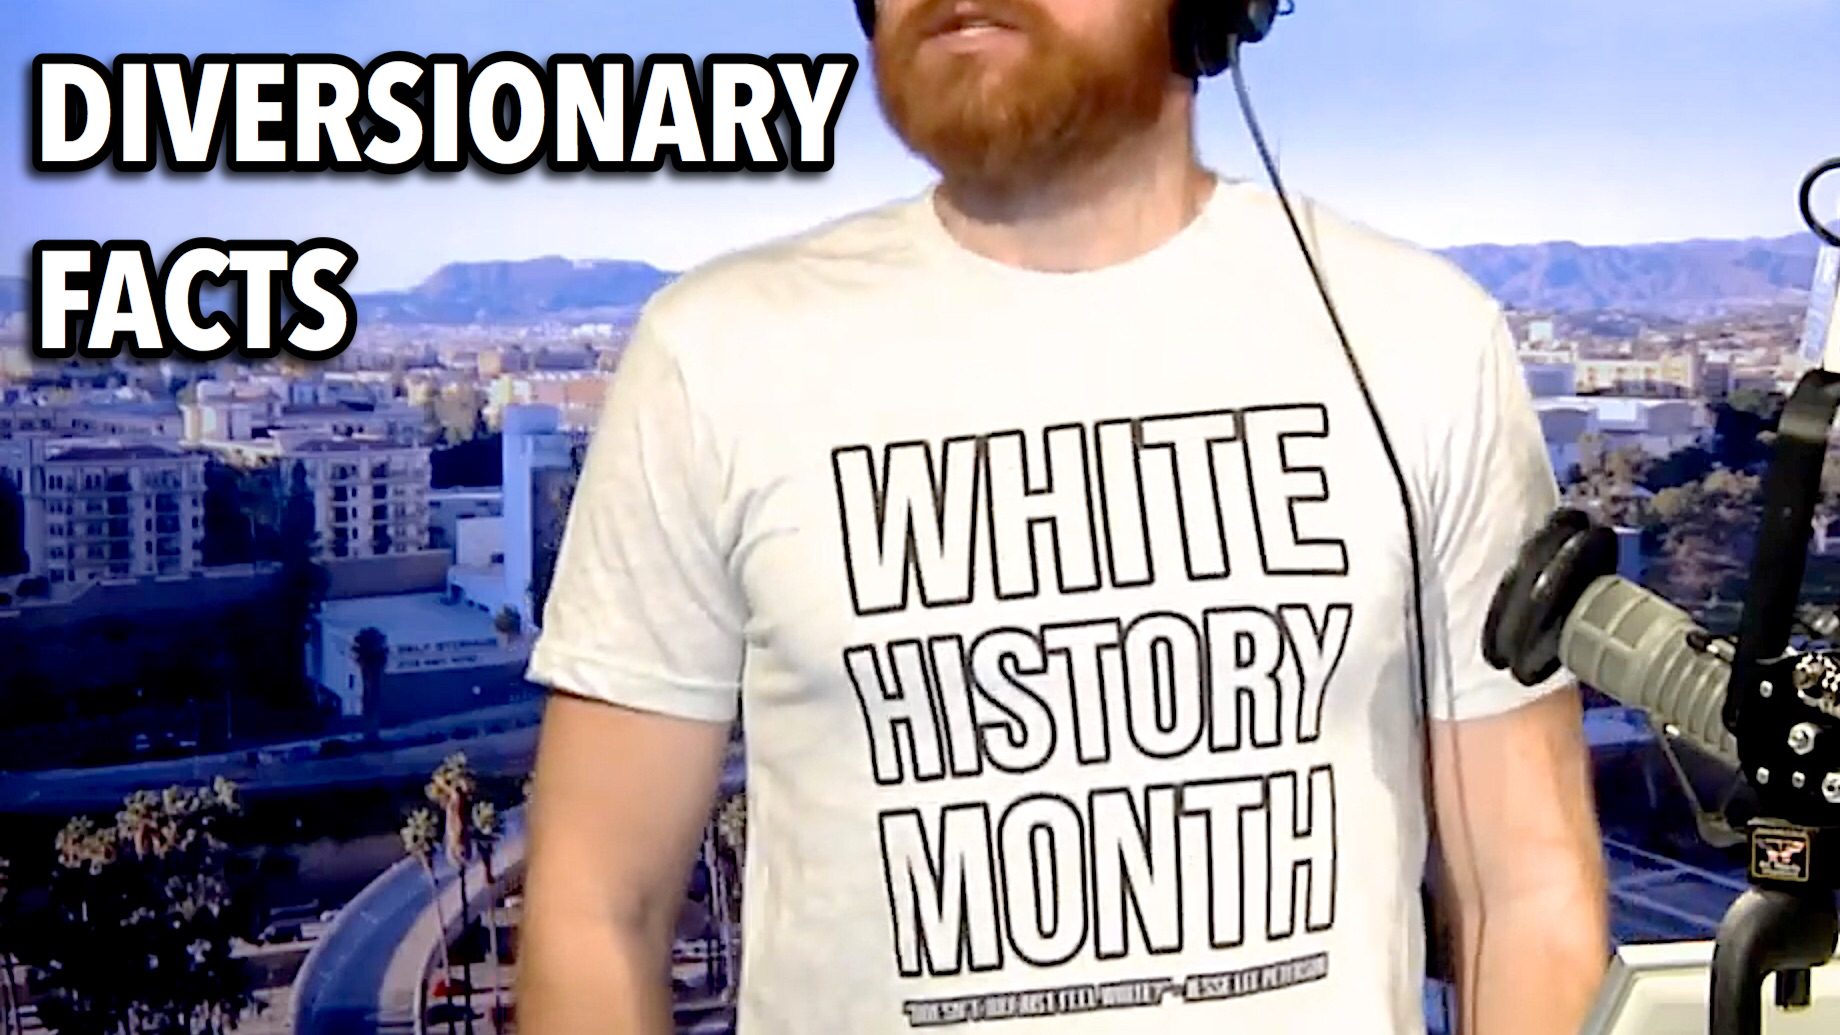 Get your White History Month t-shirt from  Jesse Lee Peterson Teespring  store!